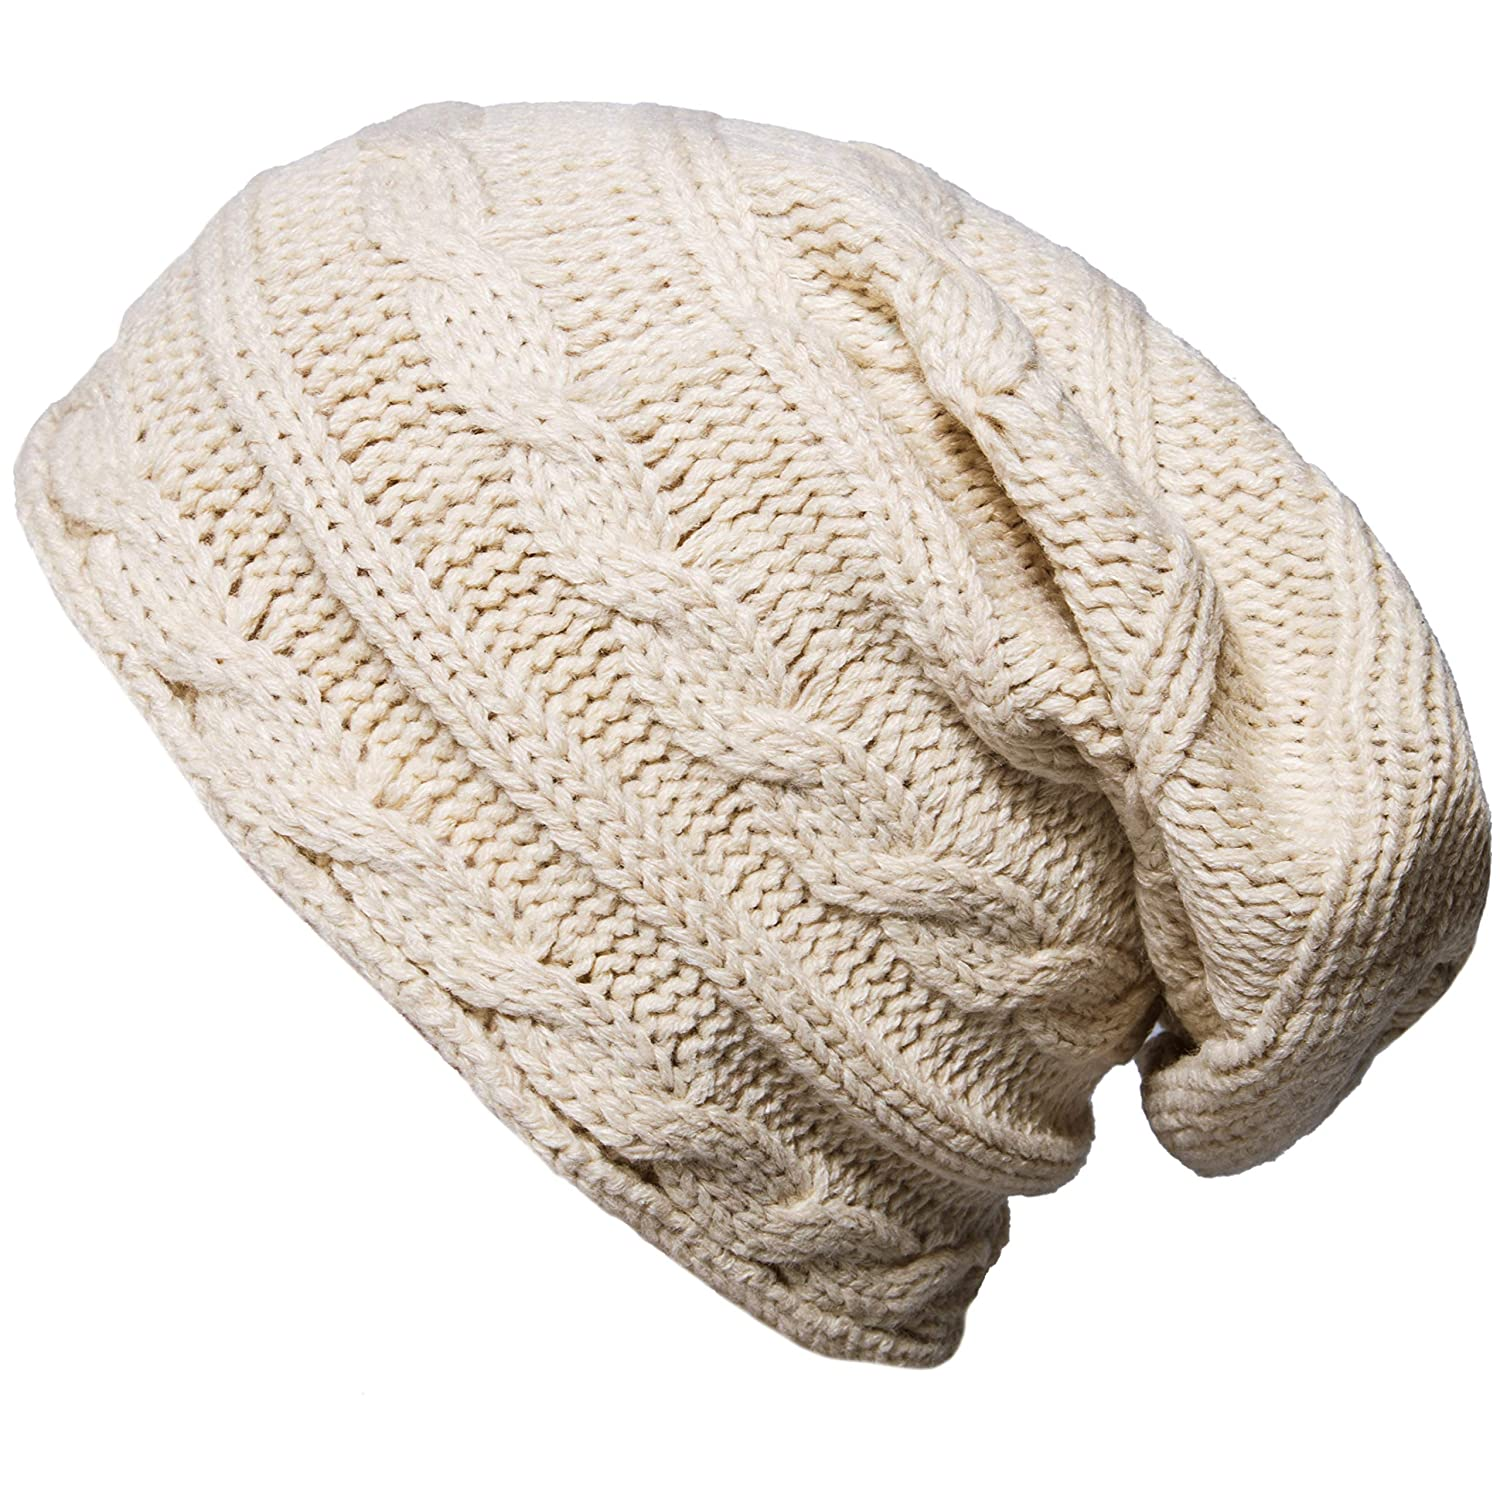 Oryer Winter Knit Slouchy Beanie Baggy Warm Soft Chunky Cable Hats Women Men CLO-061-1